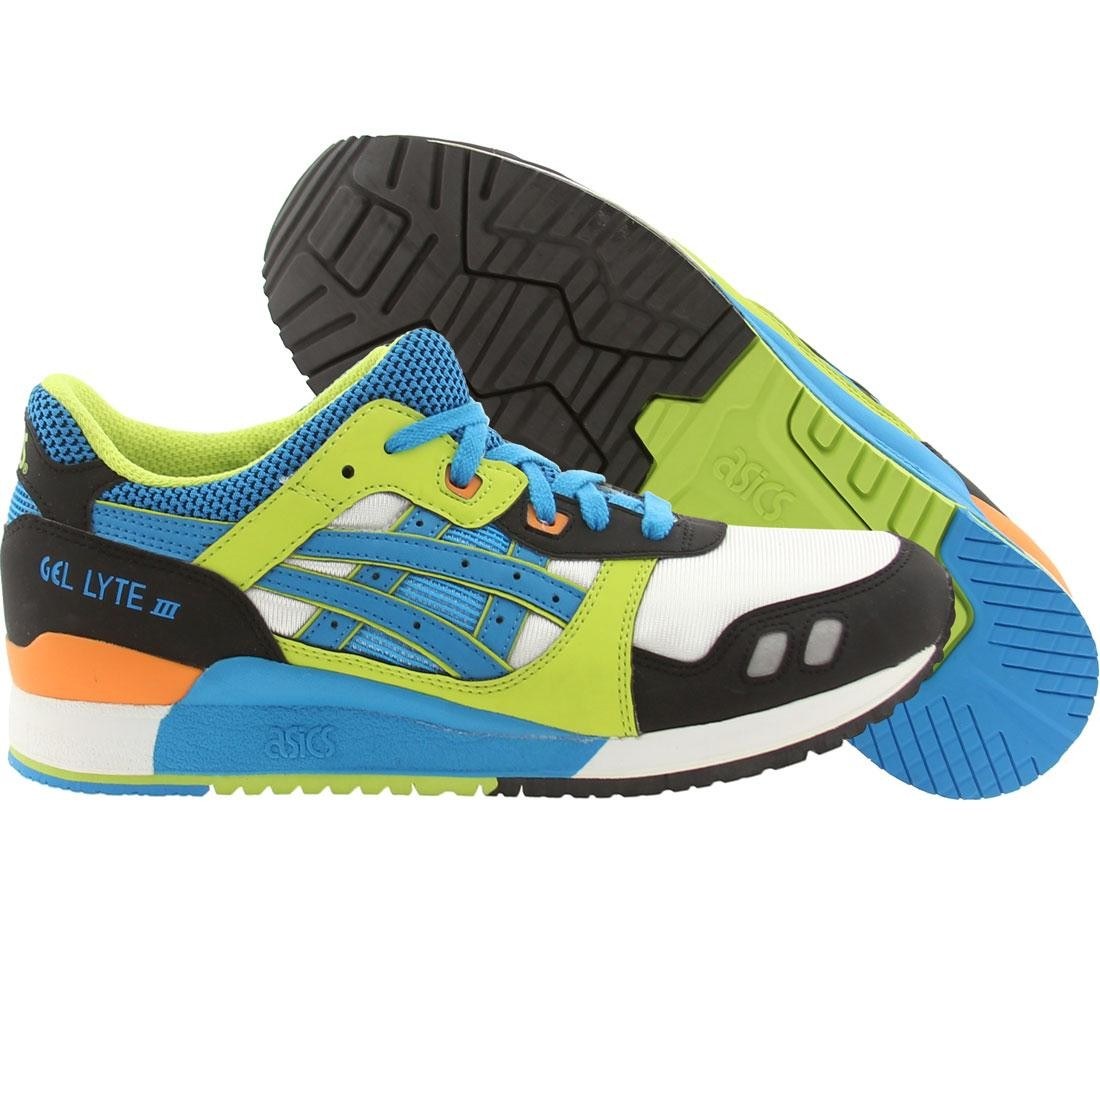 newest 86103 75f53 Asics Tiger Gel-Lyte III (white / astro / blue / green / orange)